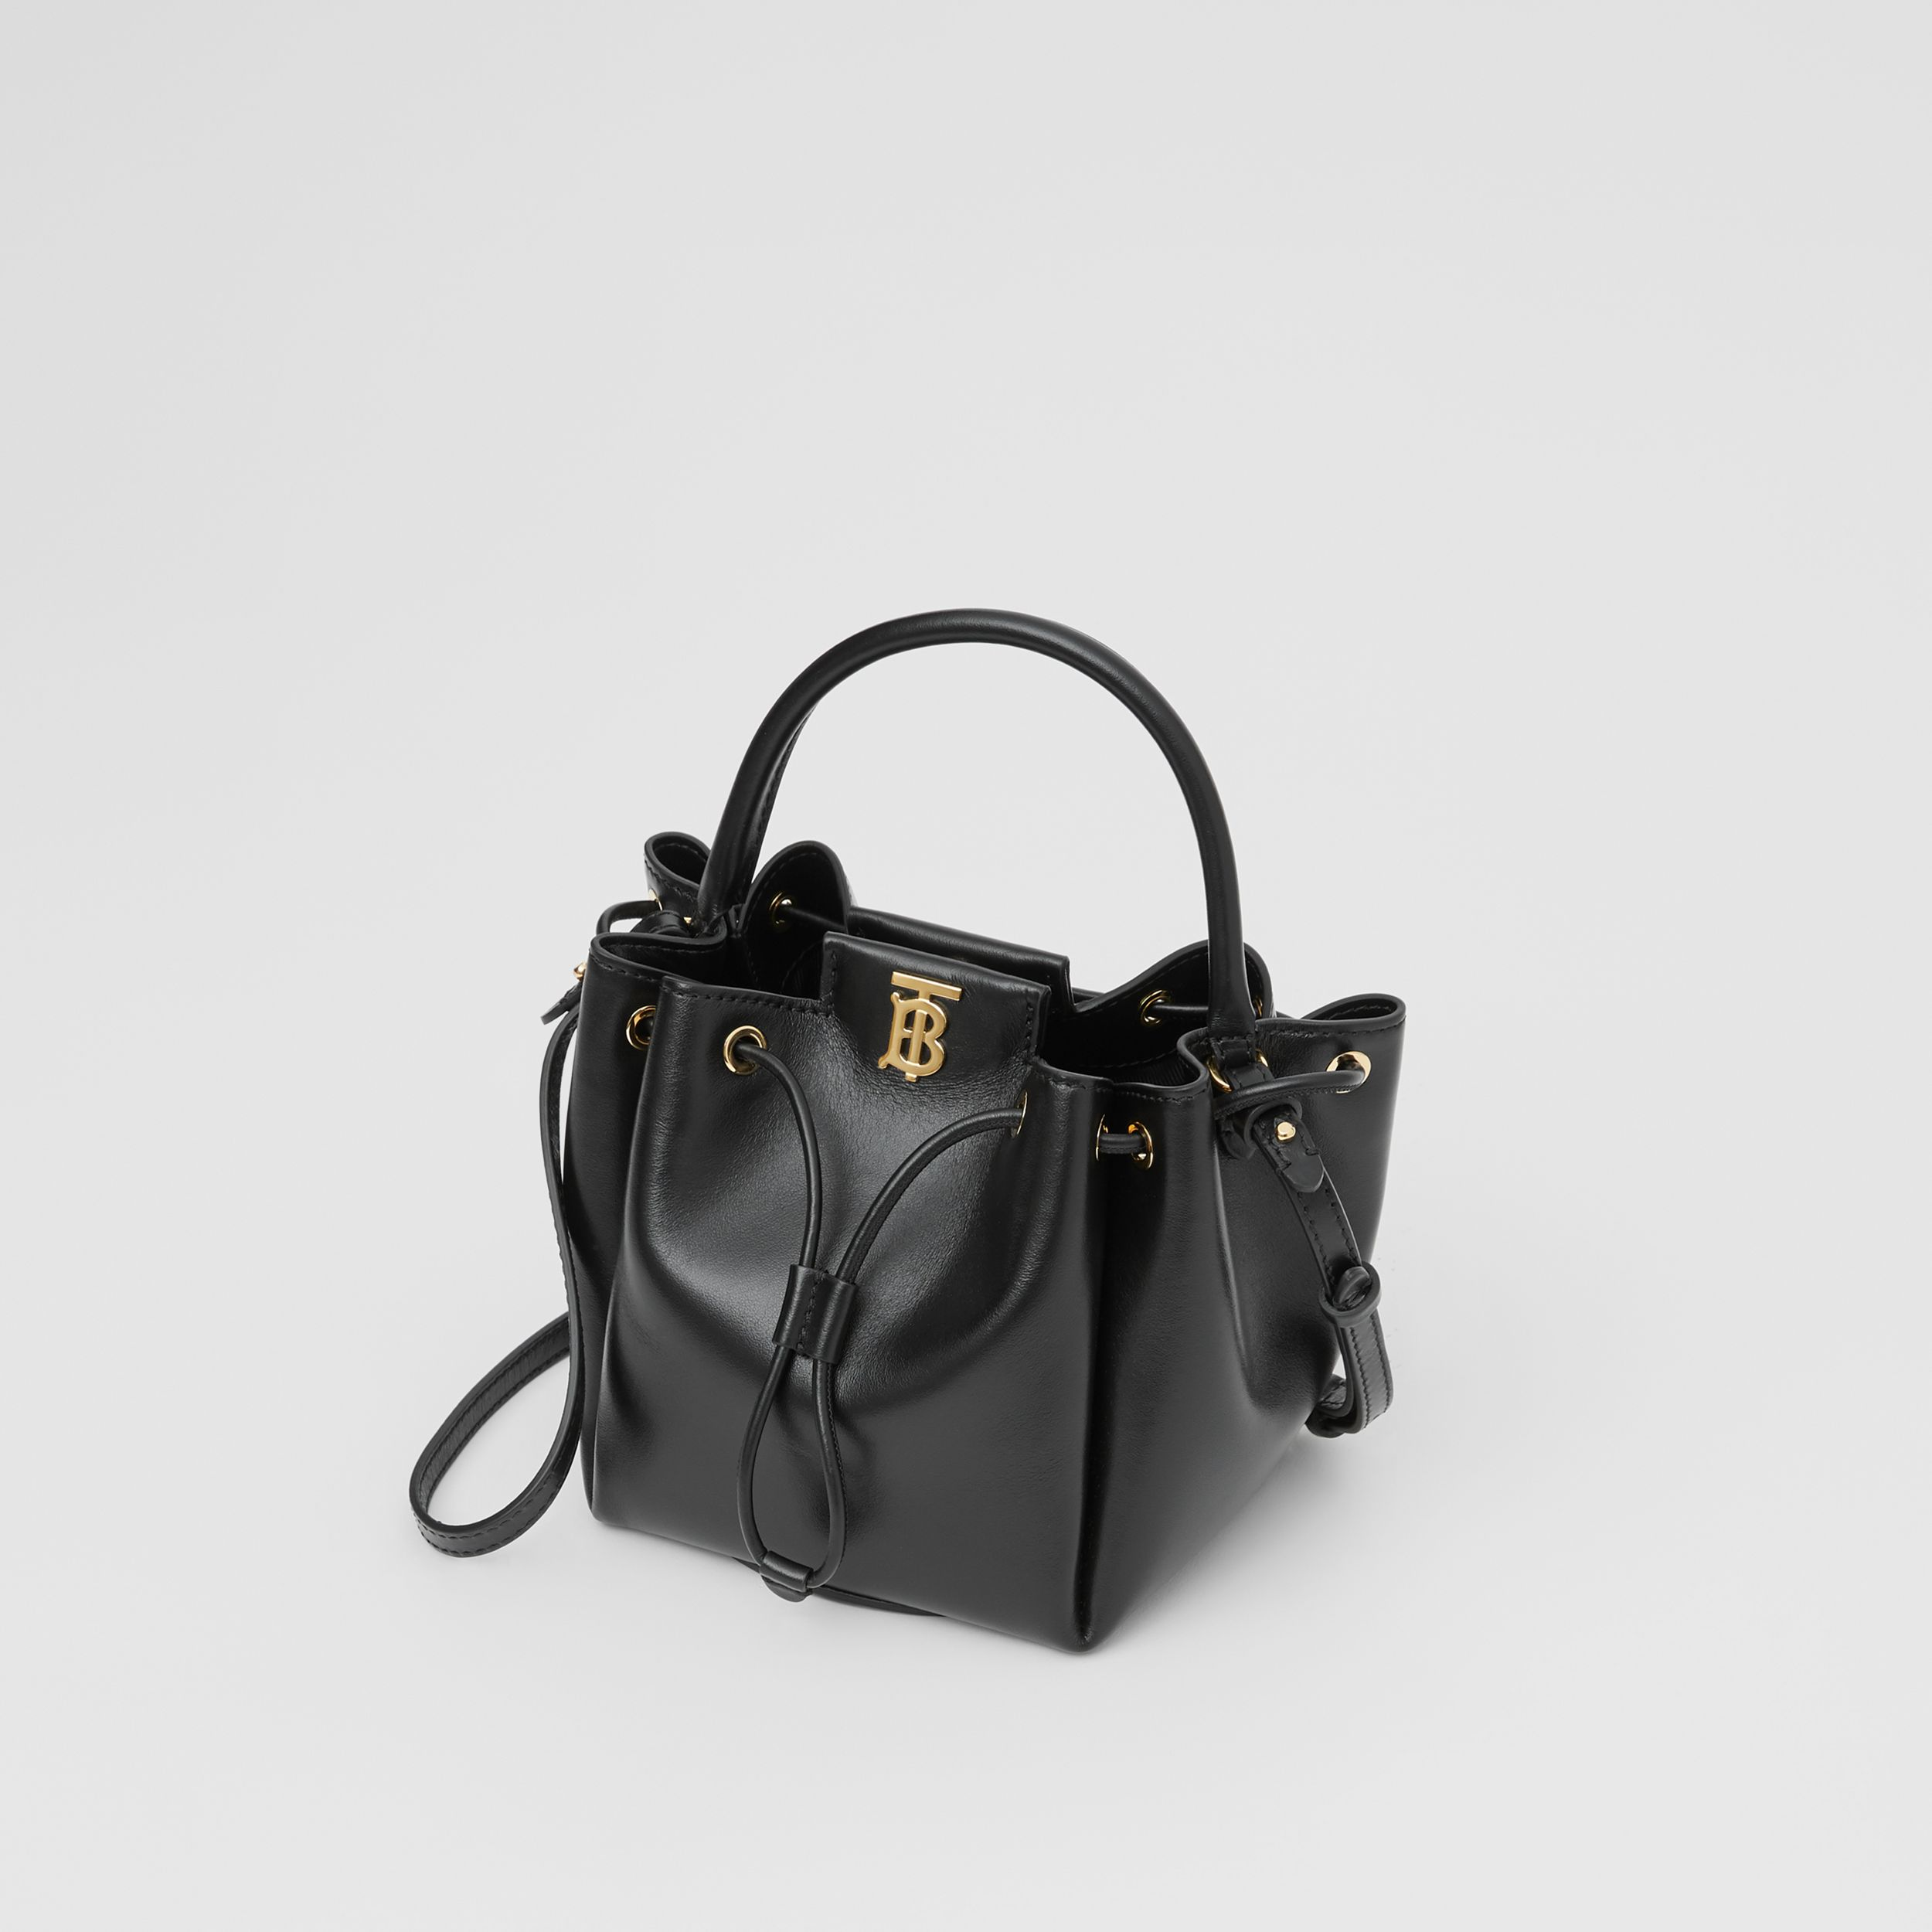 Monogram Motif Leather Bucket Bag in Black - Women | Burberry United Kingdom - 4